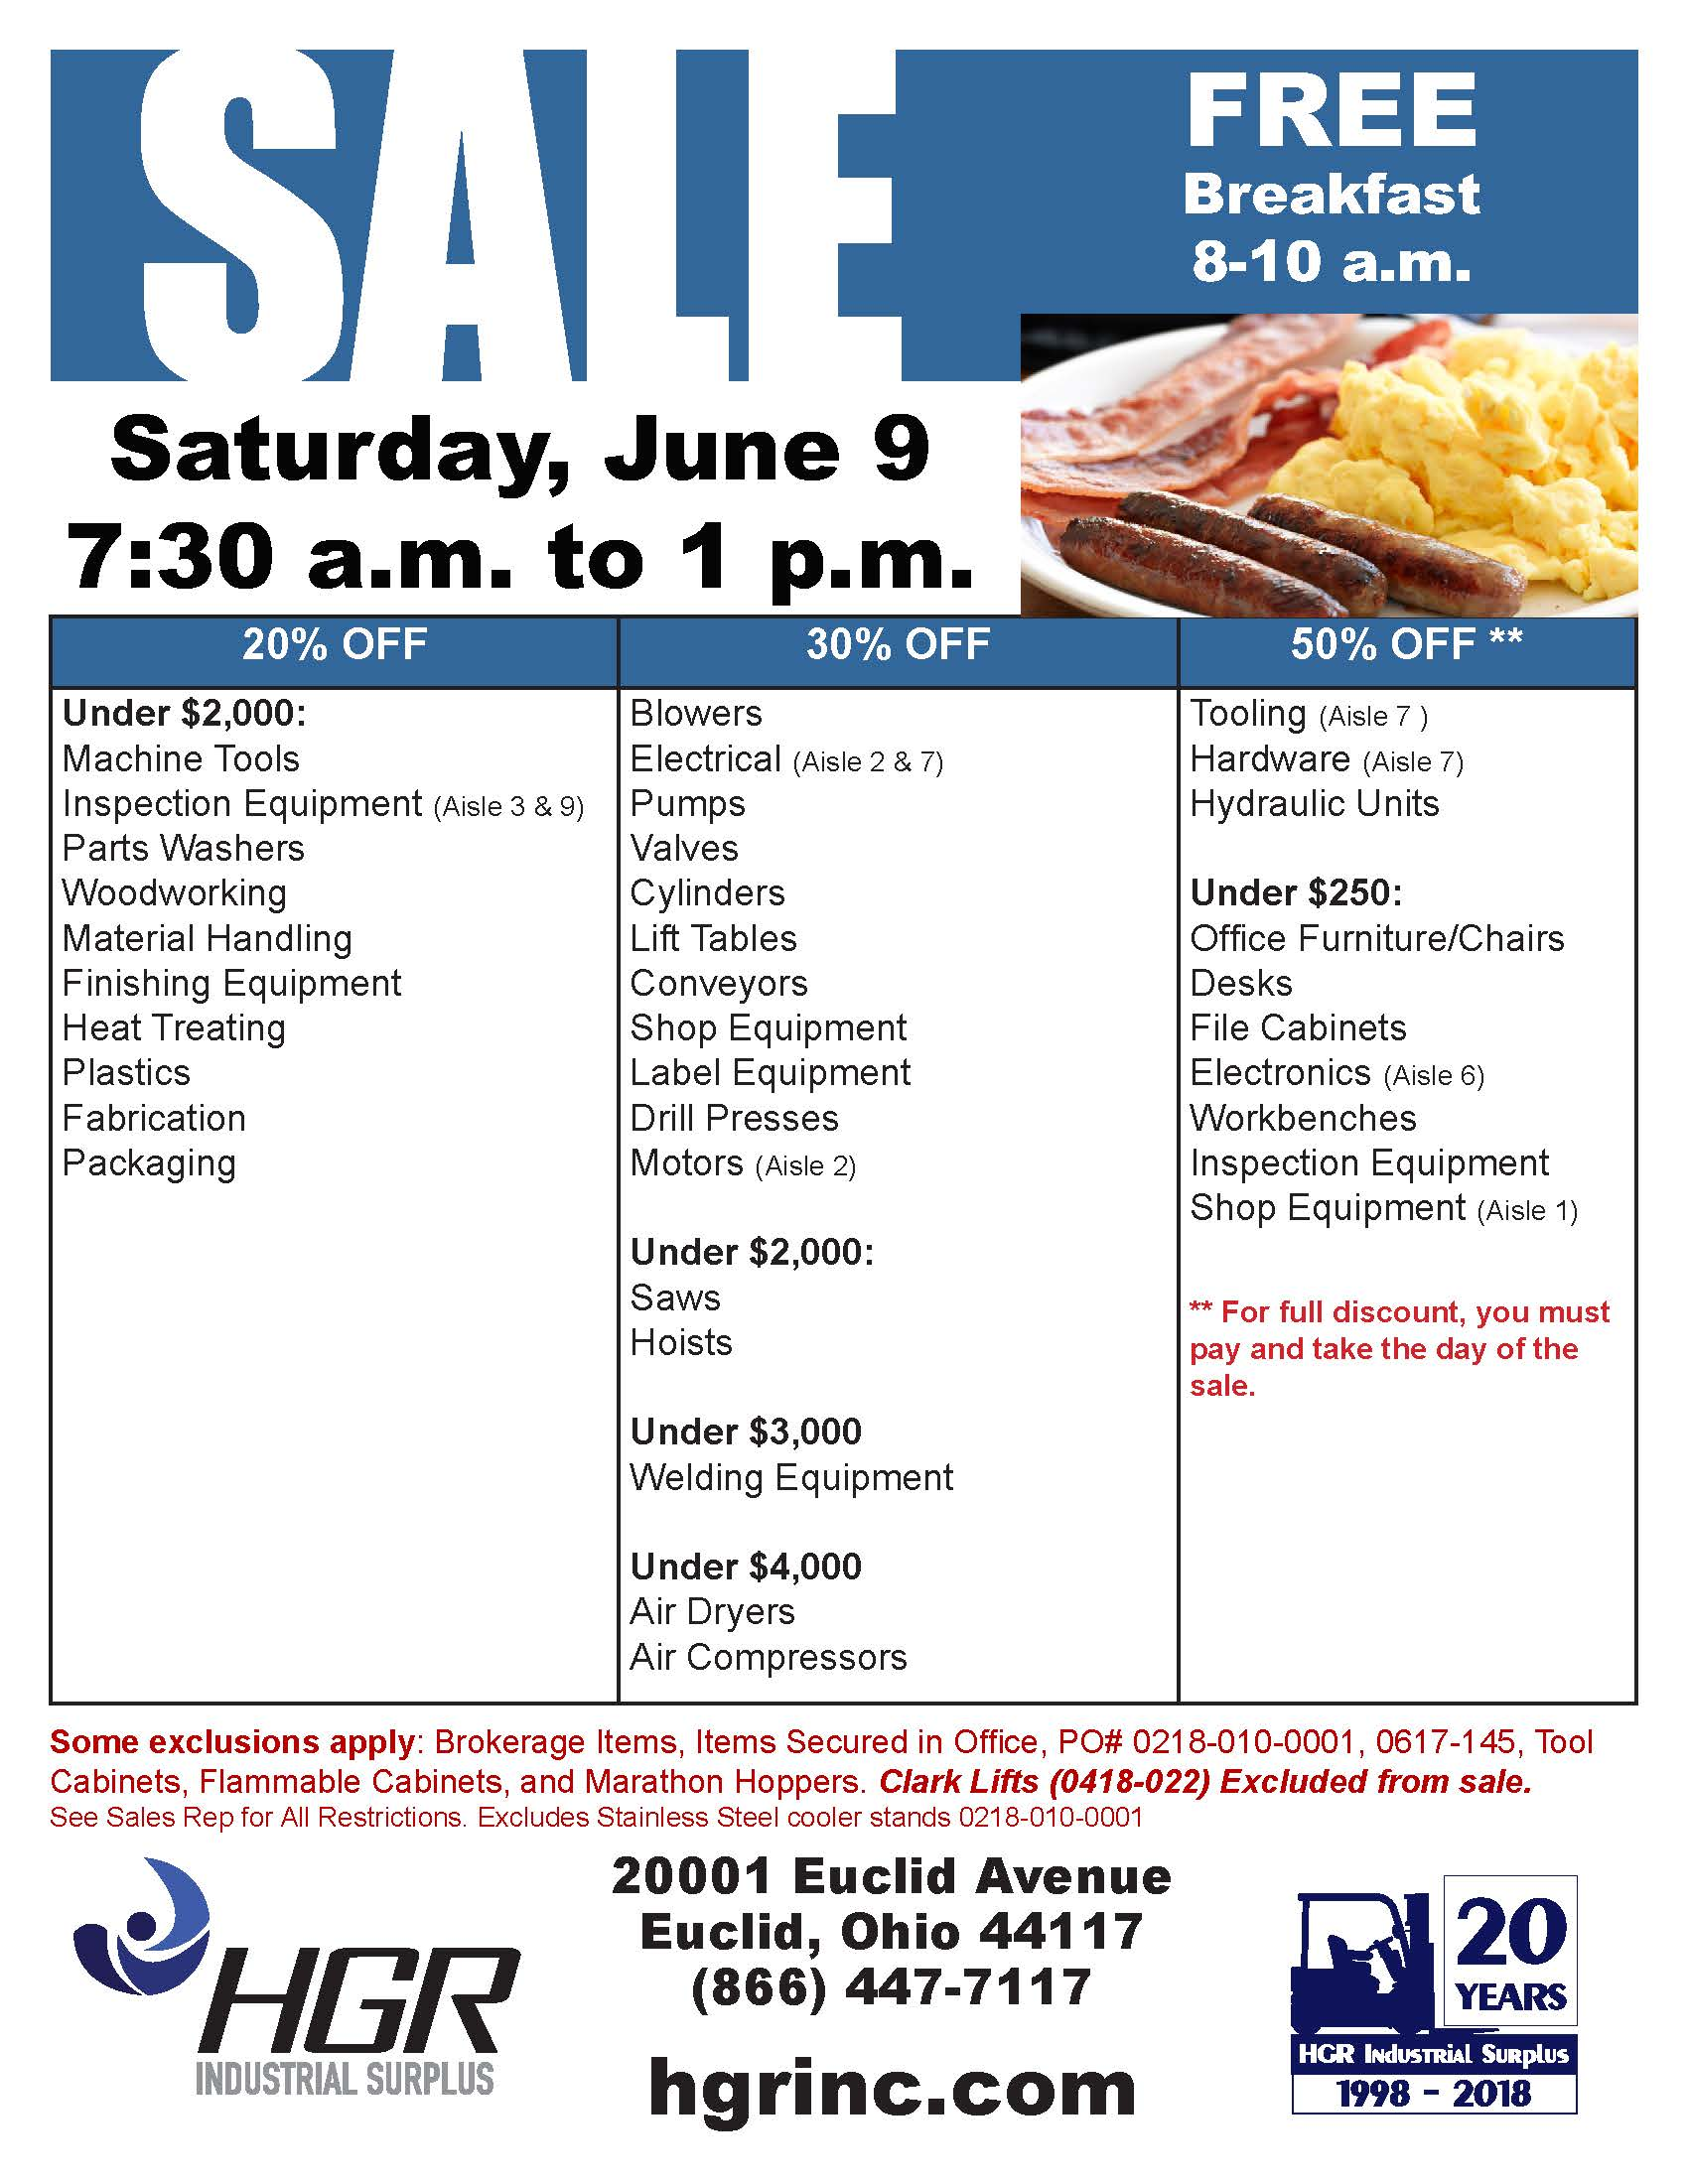 HGR Industrial Surplus' June 2018 Saturday sale flyer